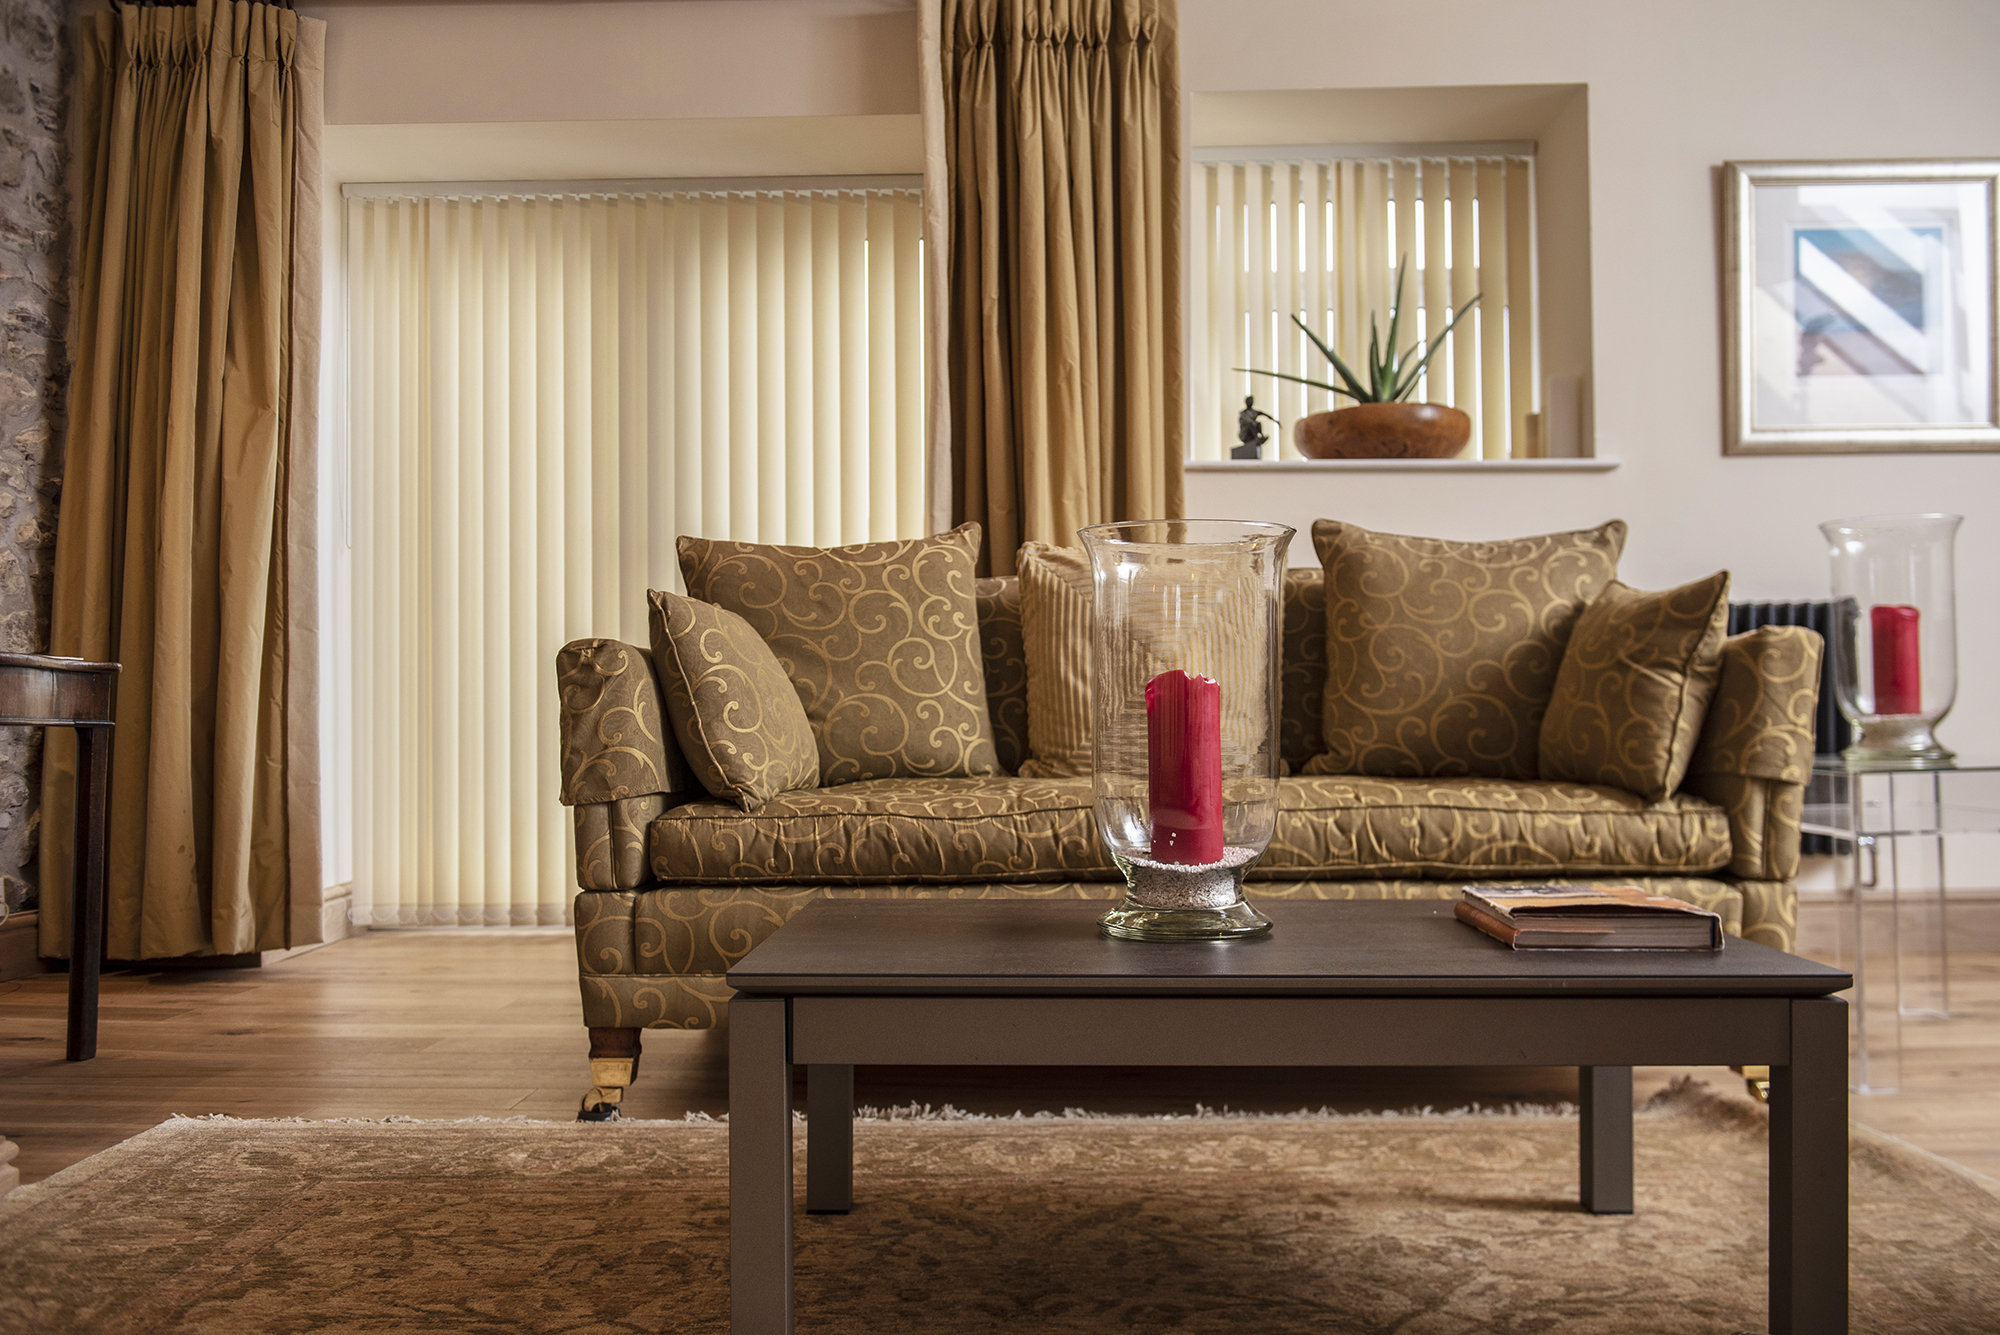 LivingRoom with Vertical Blinds and Curtains Decorquip